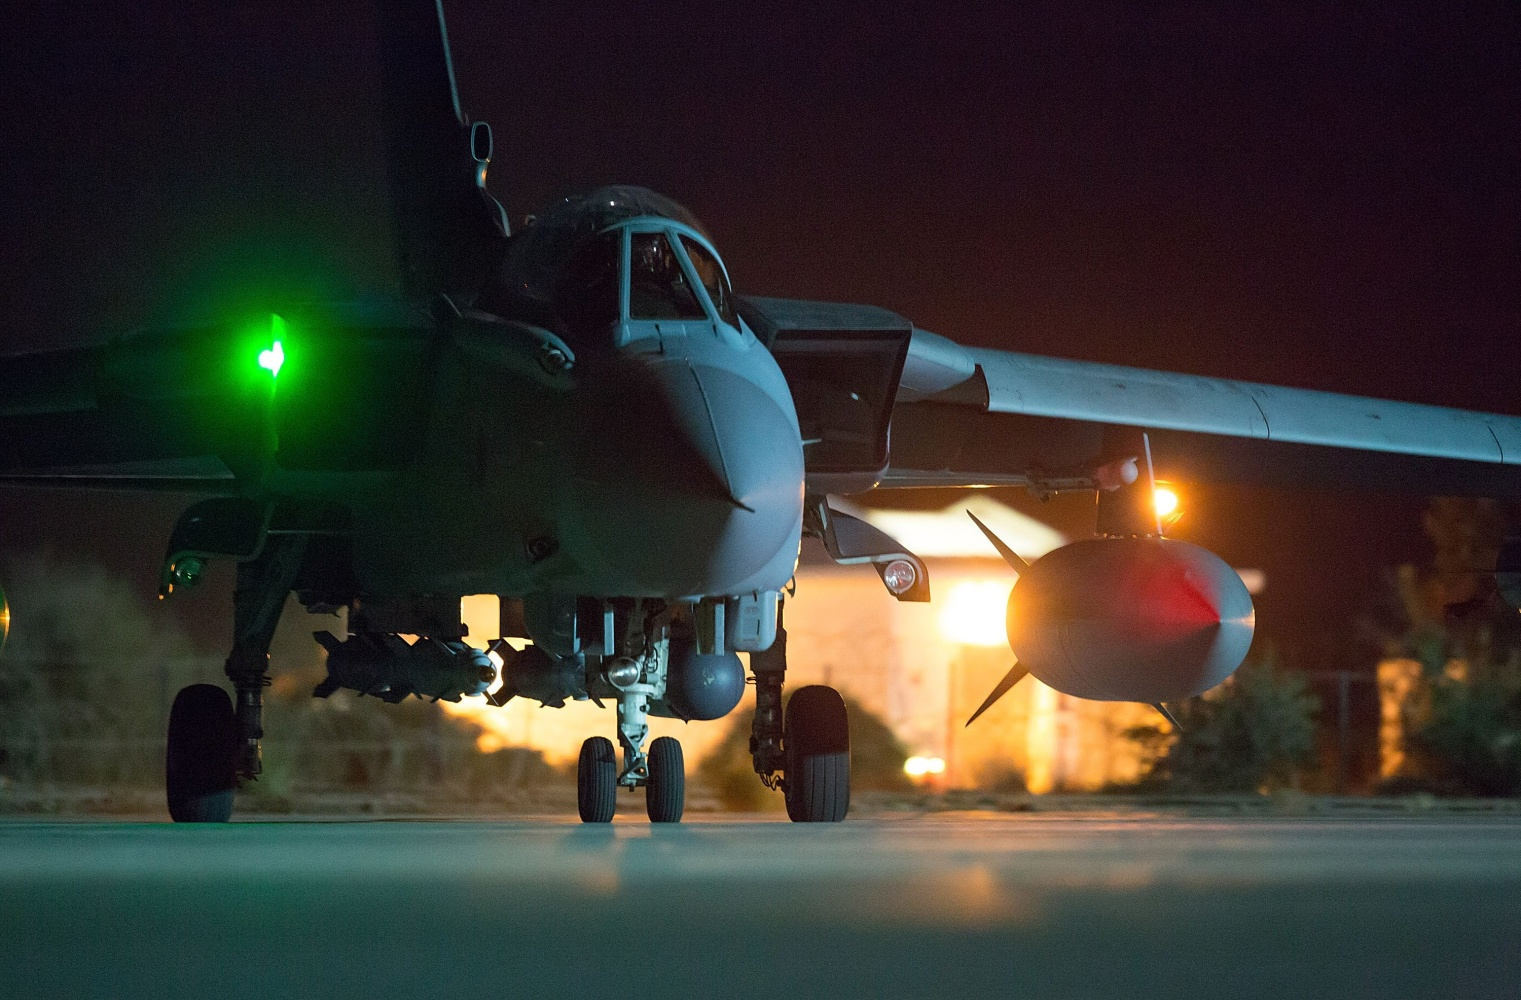 Syria: British airstrikes against ISIS commence within hours of Parliament vote